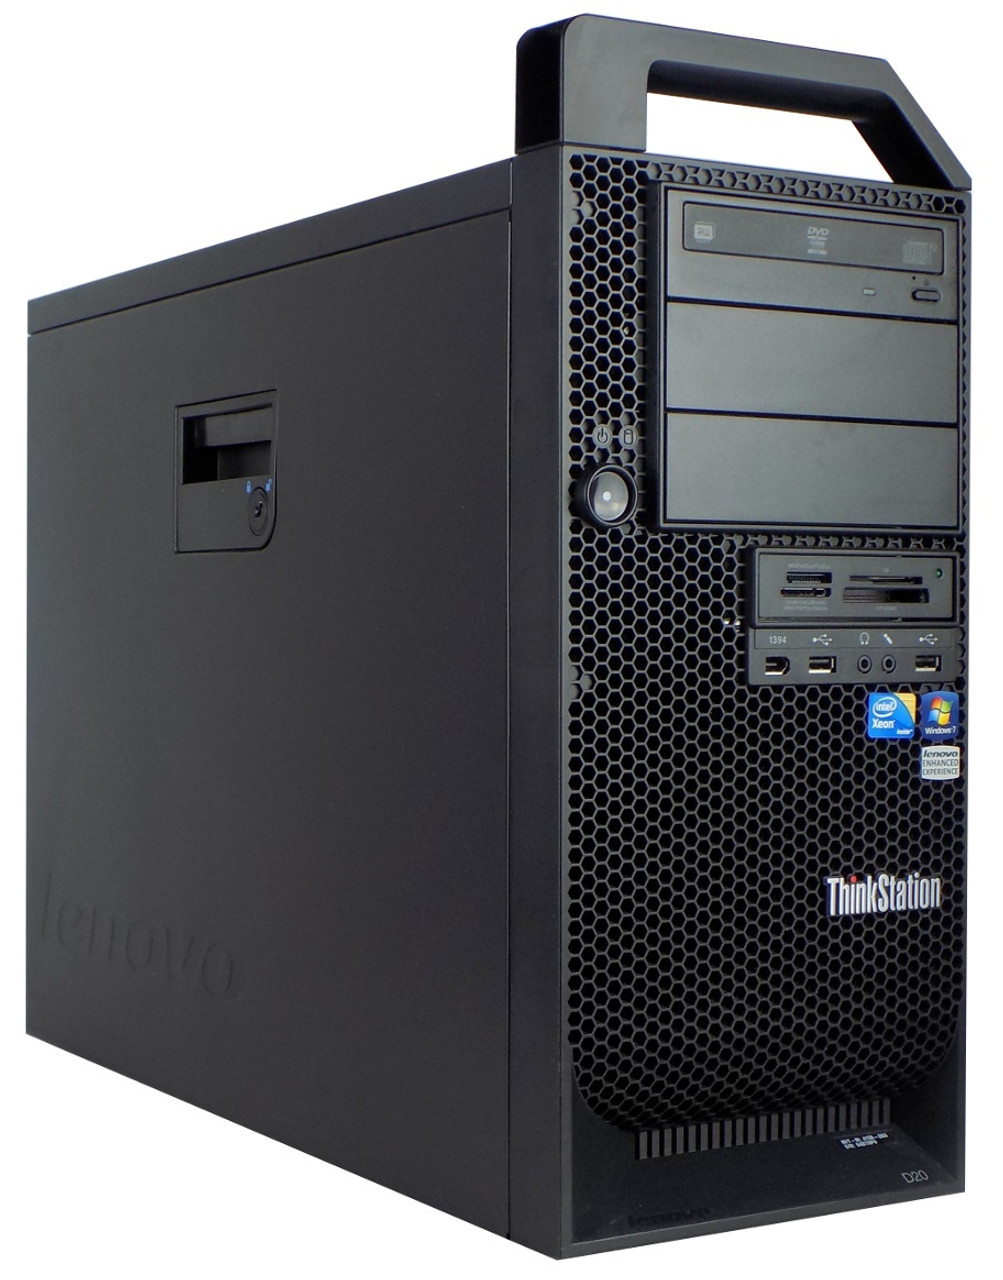 IBM Lenovo Thinkstation D20 tower Quad Core Dual